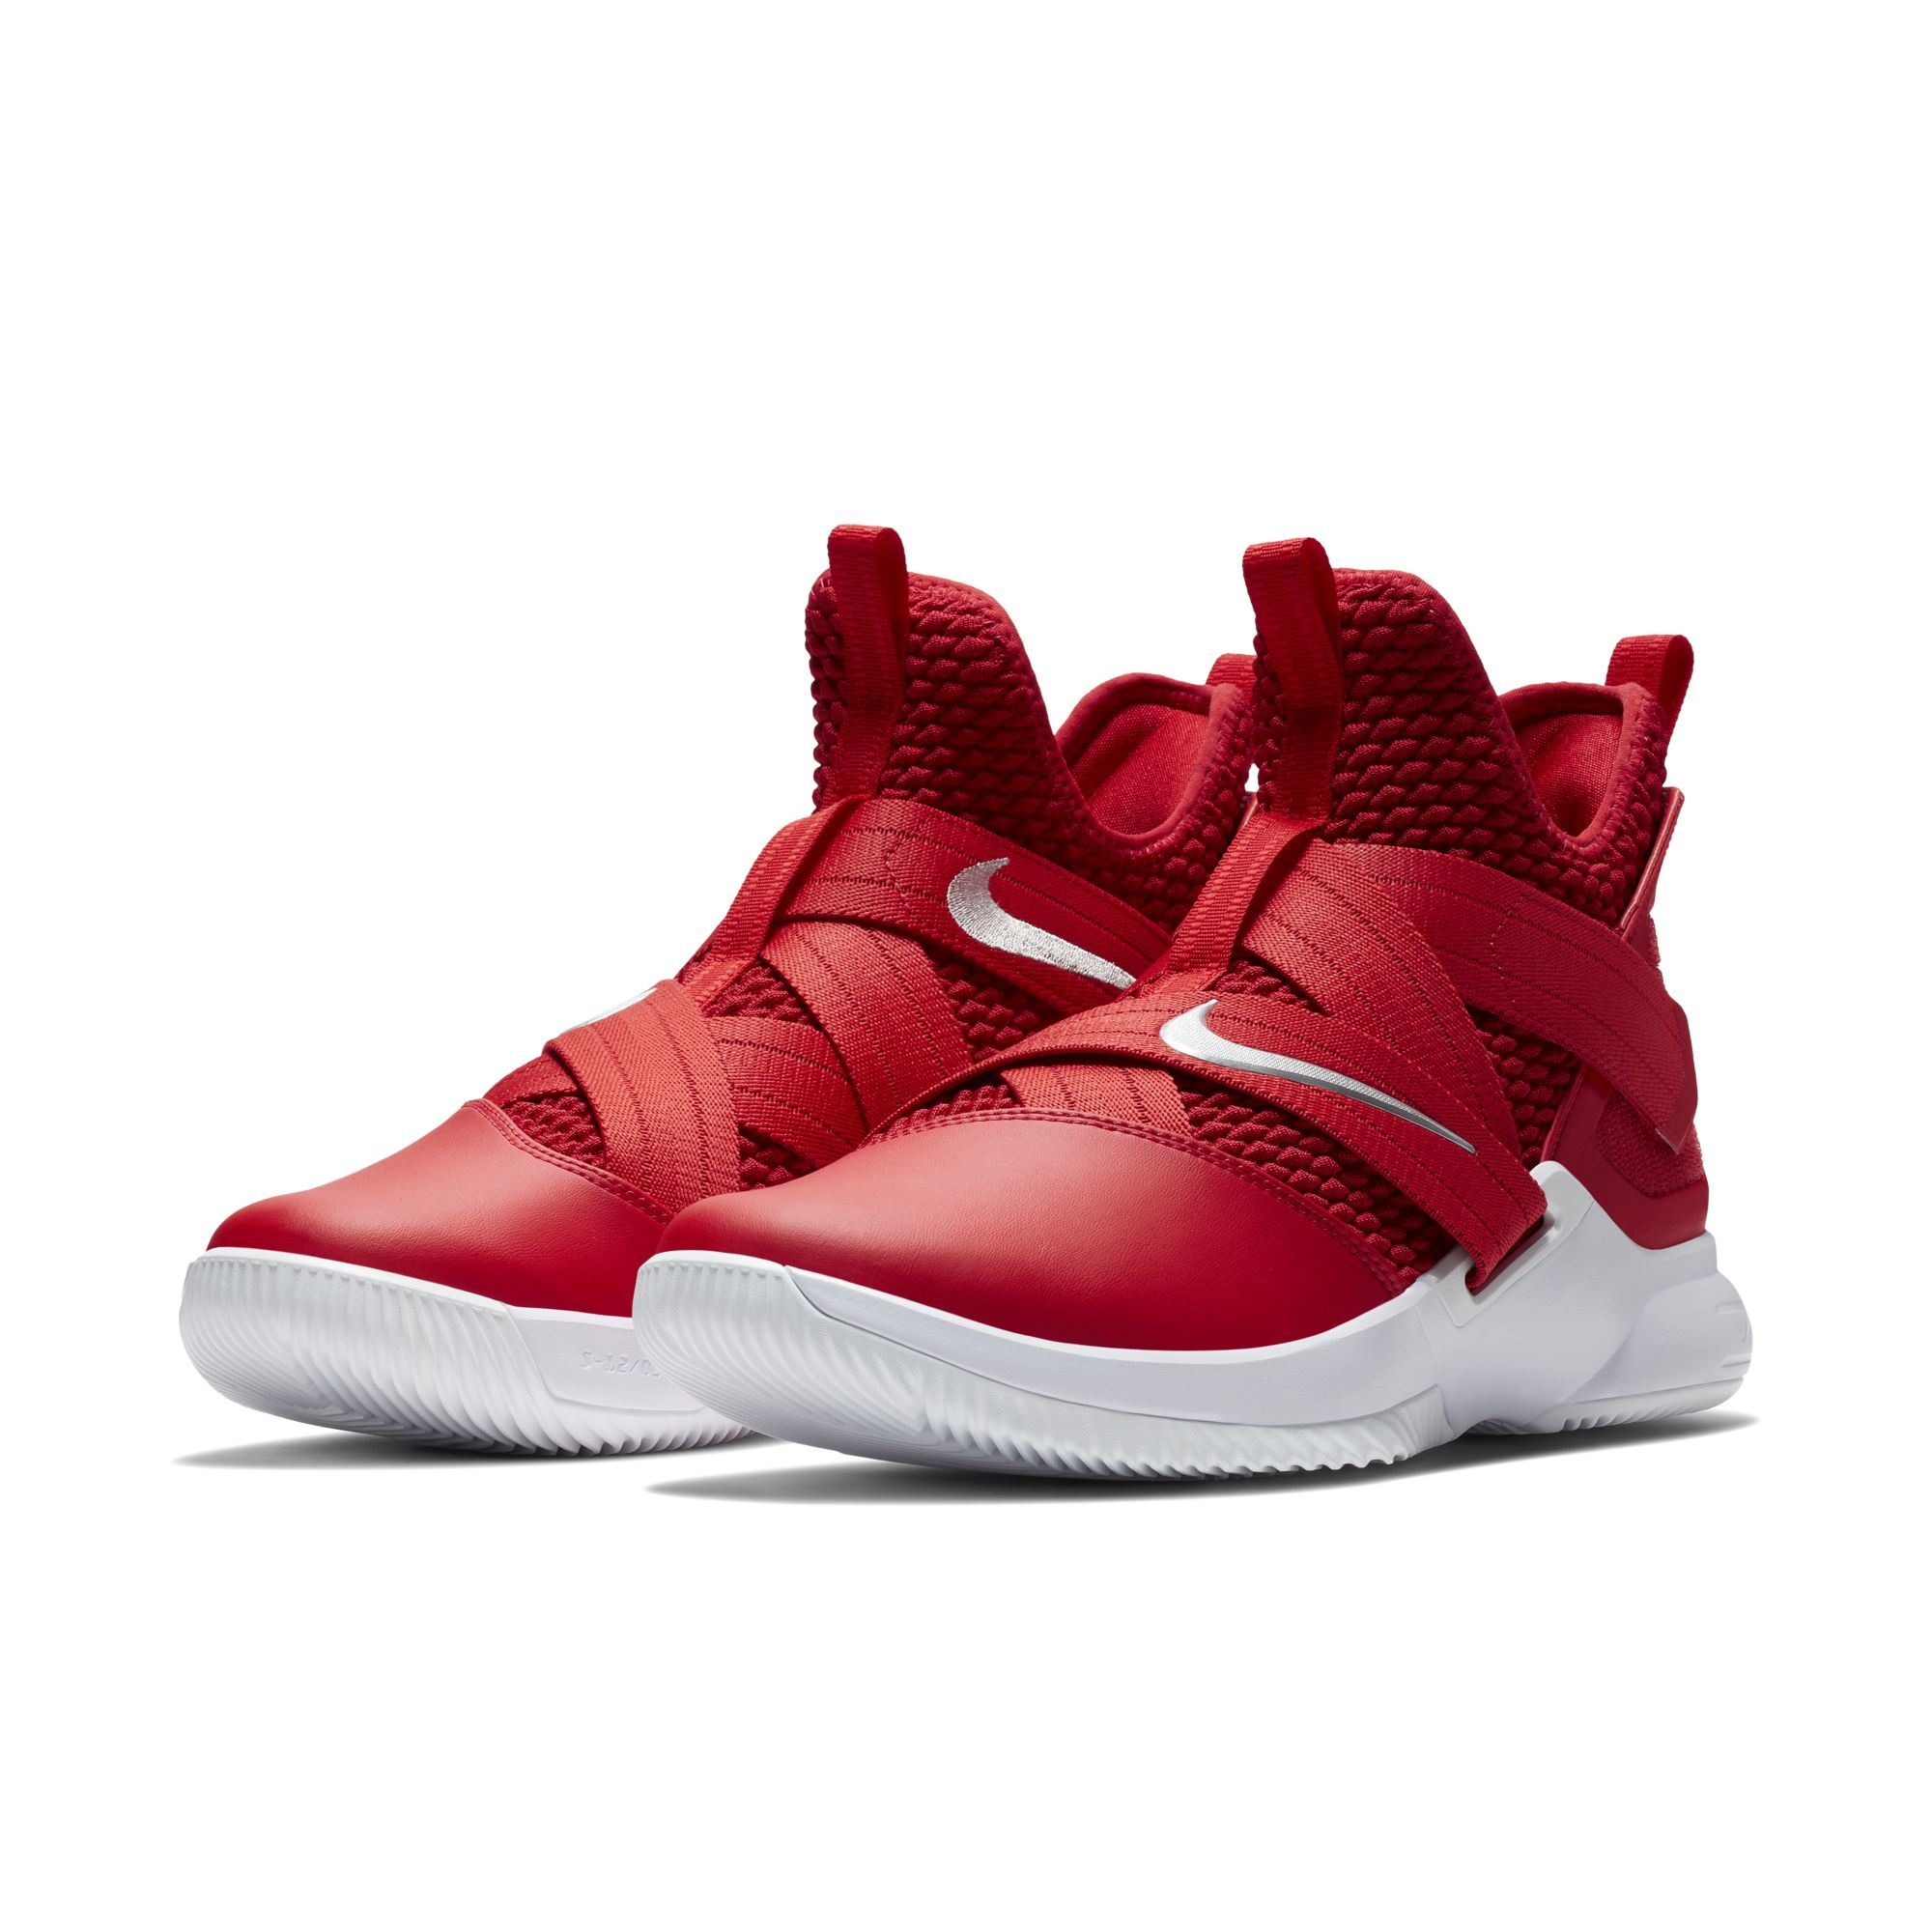 new arrival 3bae5 3a3a4 LeBron's Latest Soldier 12 Arrives in Team Colorways for ...